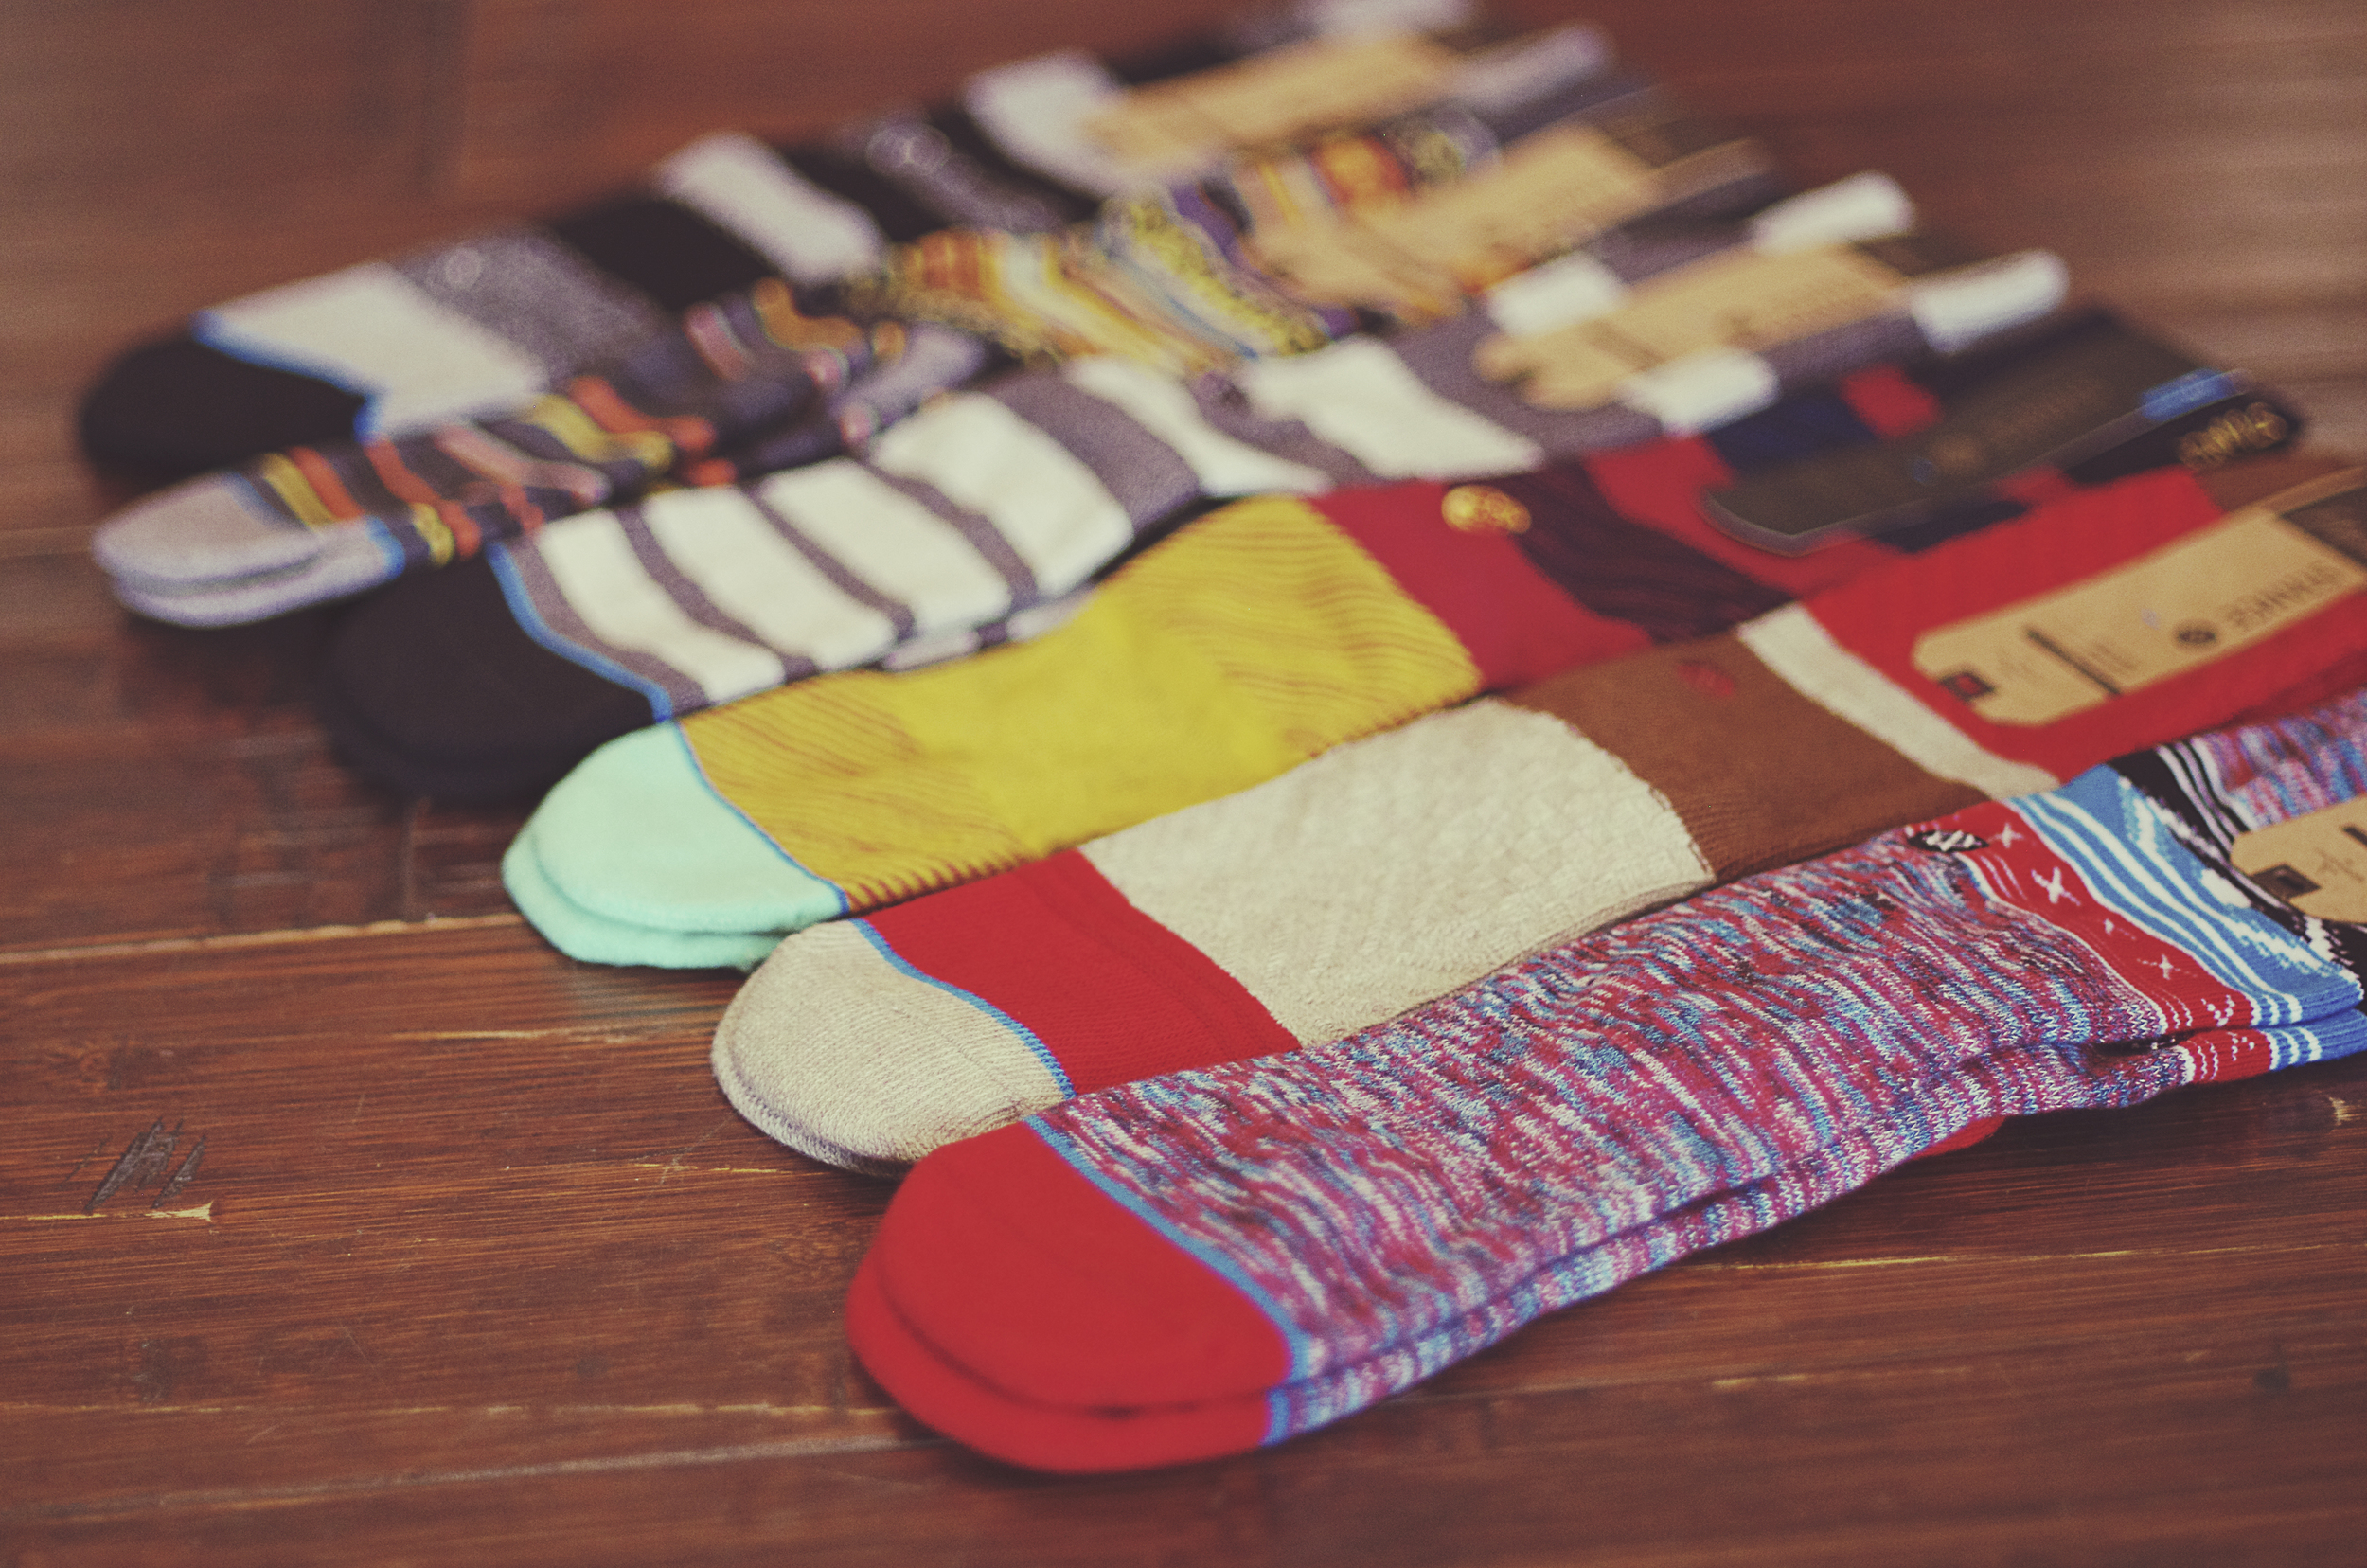 A look at the toe caps of the Stance Reserve socks.